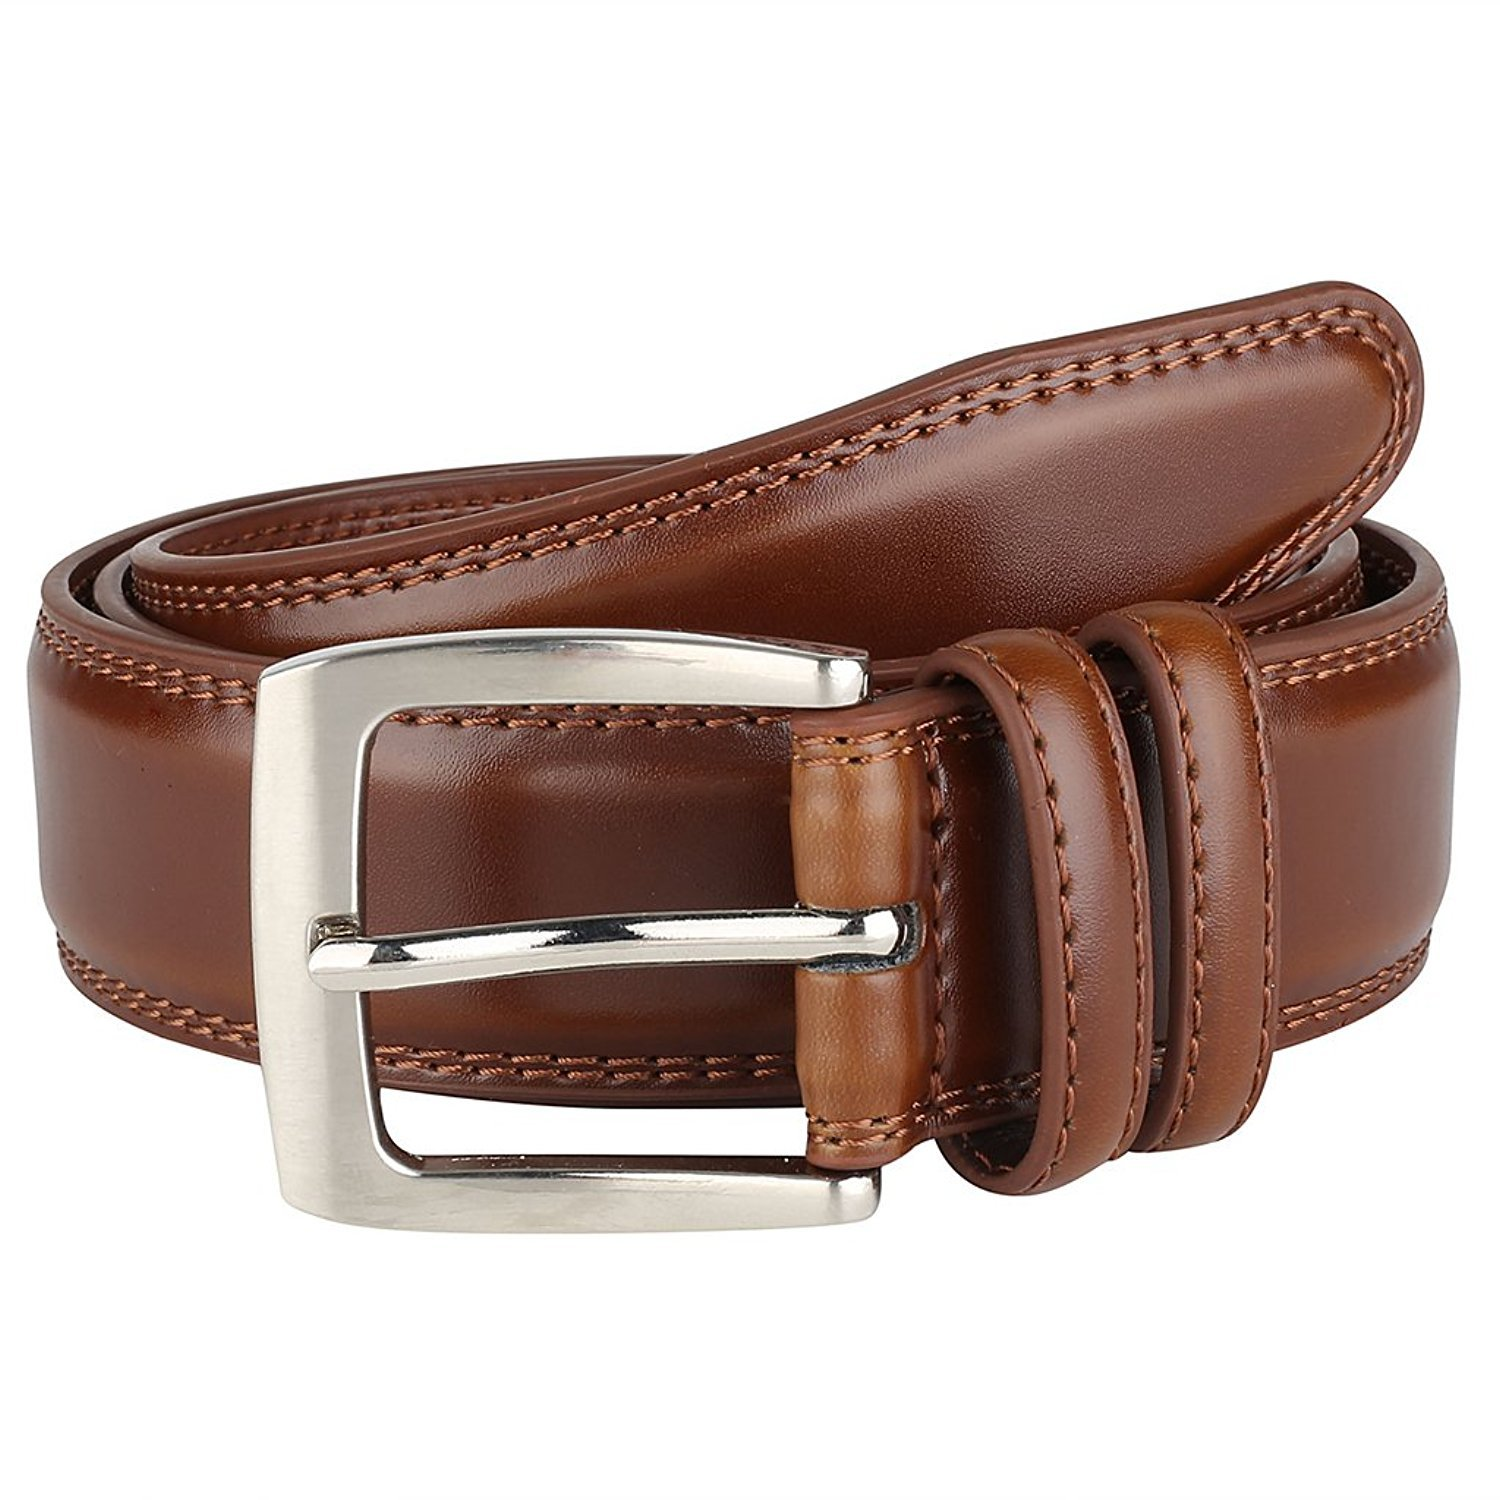 Men's Dress Belt ALL Genuine Leather Black Tan Cognac Brown 35mm All Sizes